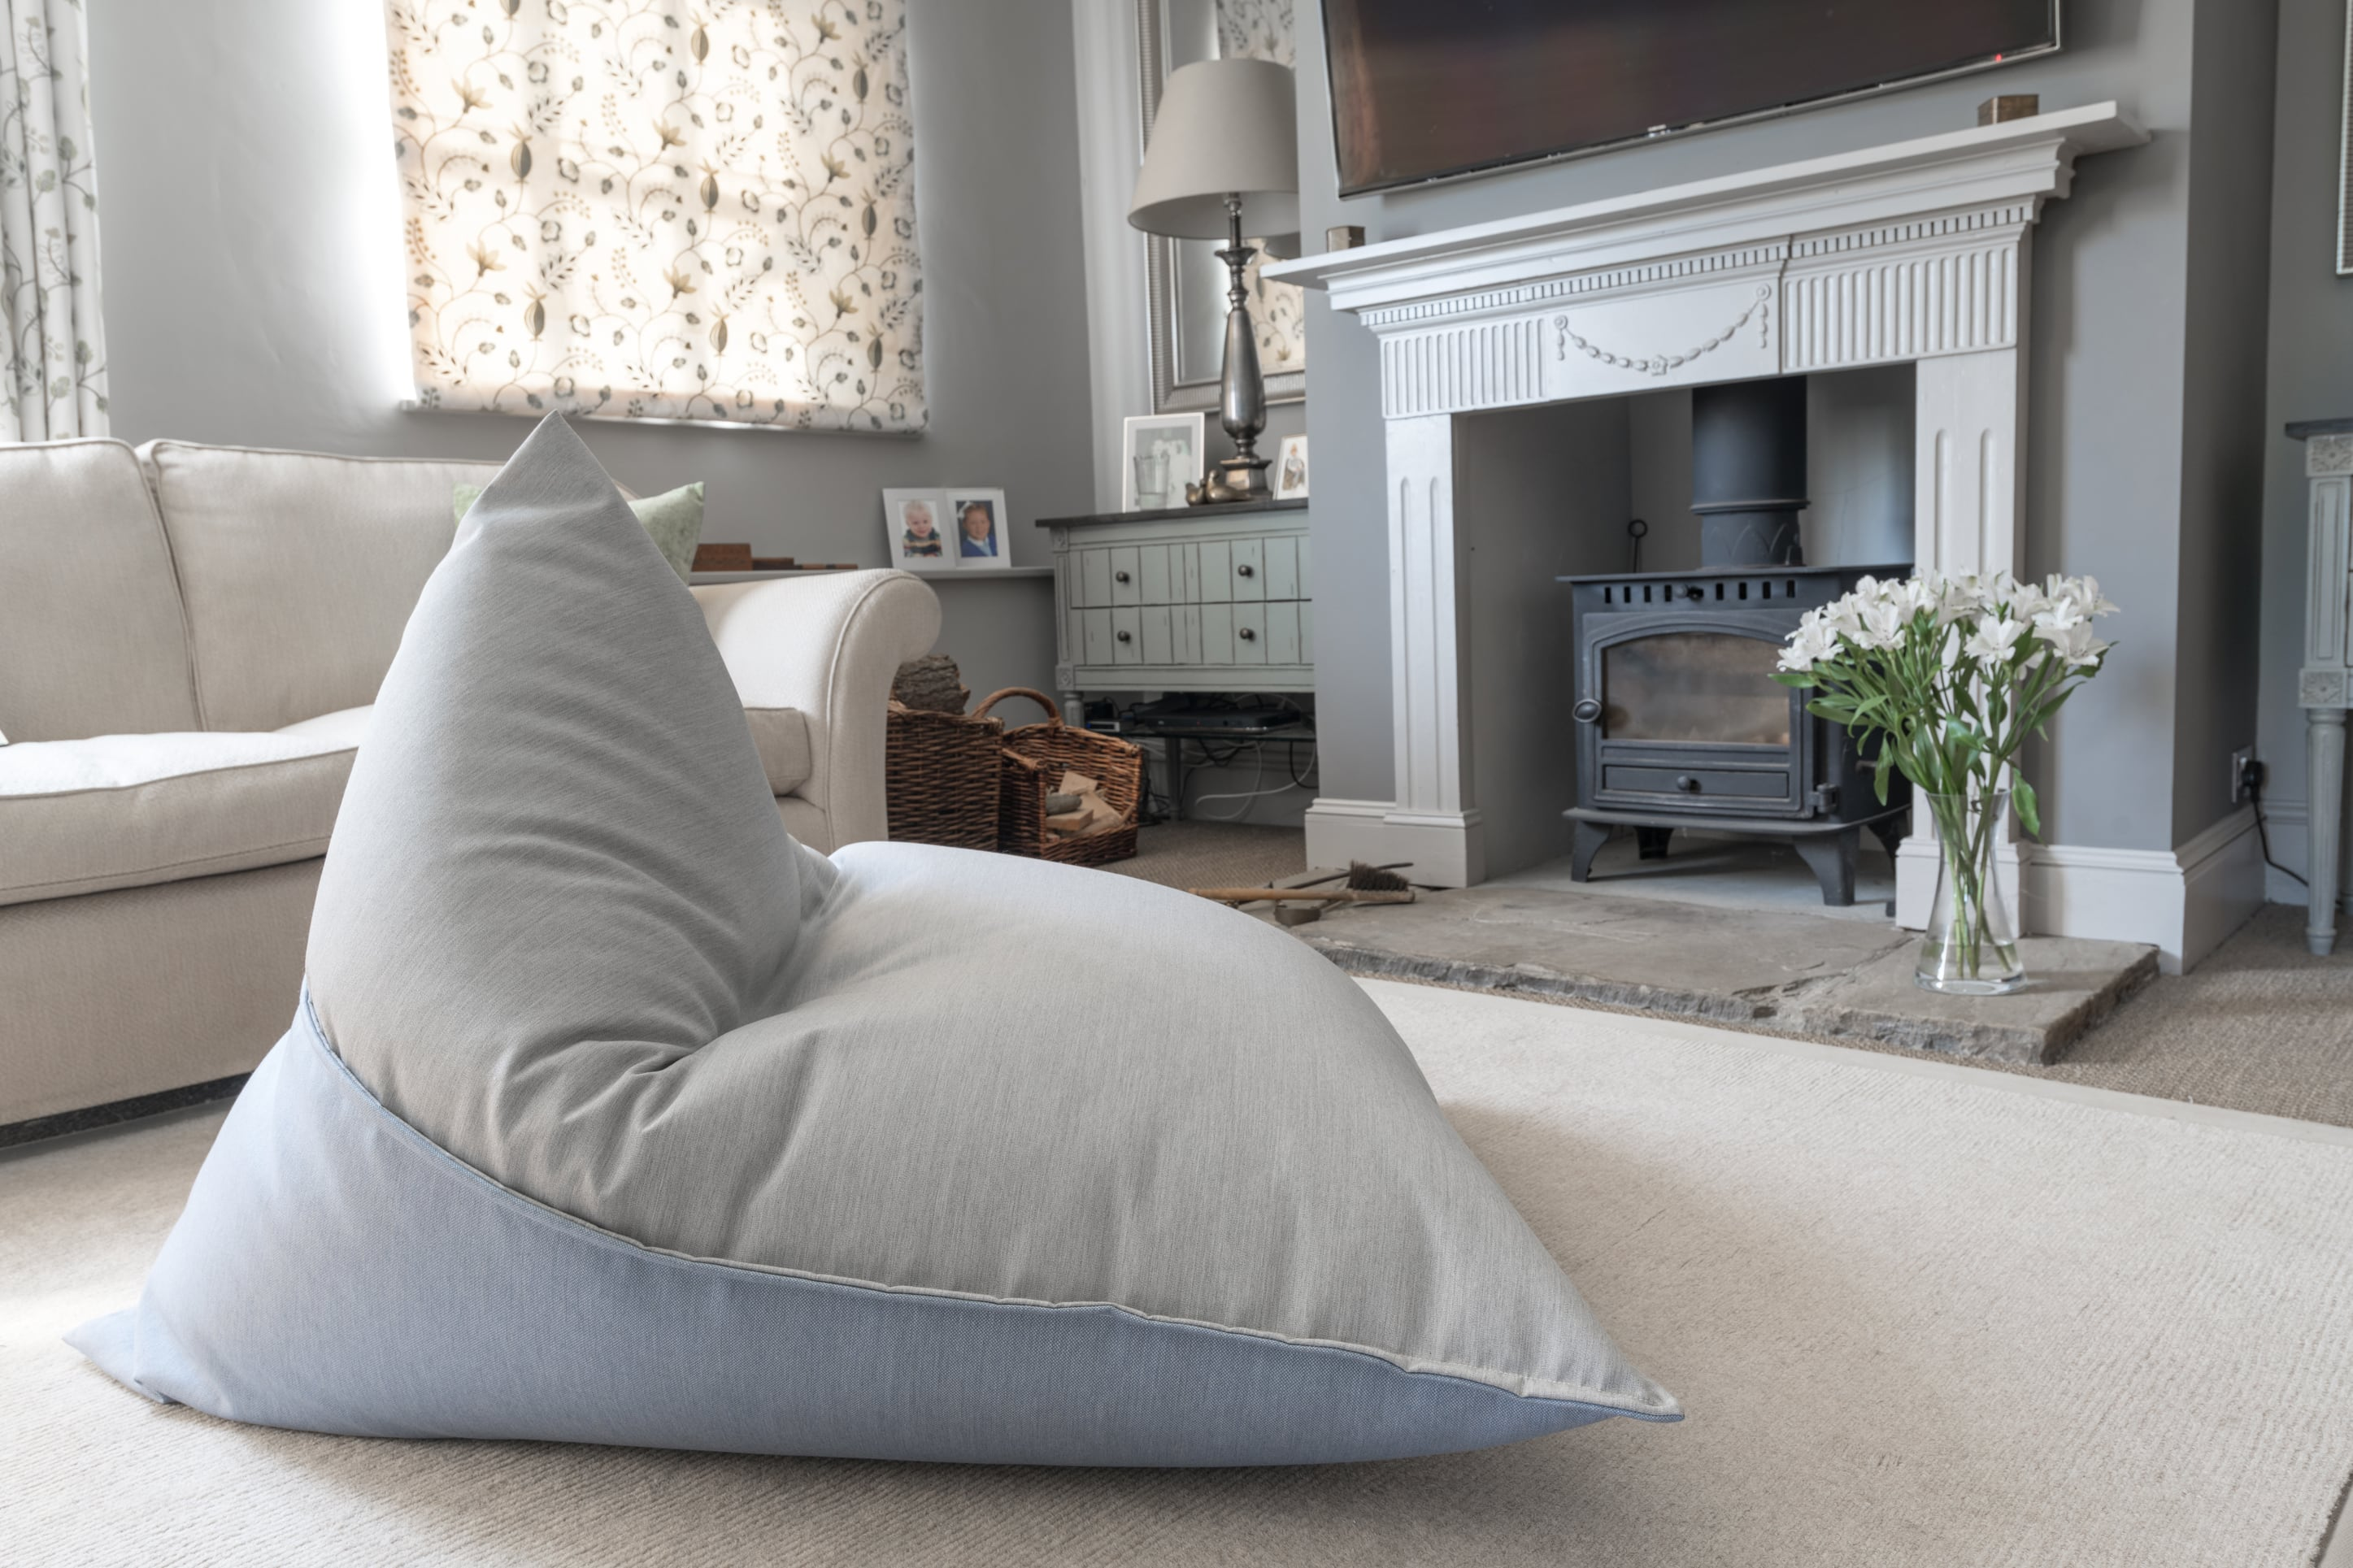 Armadillo Sun bean bag chair in ice blue and grey fabric indoors